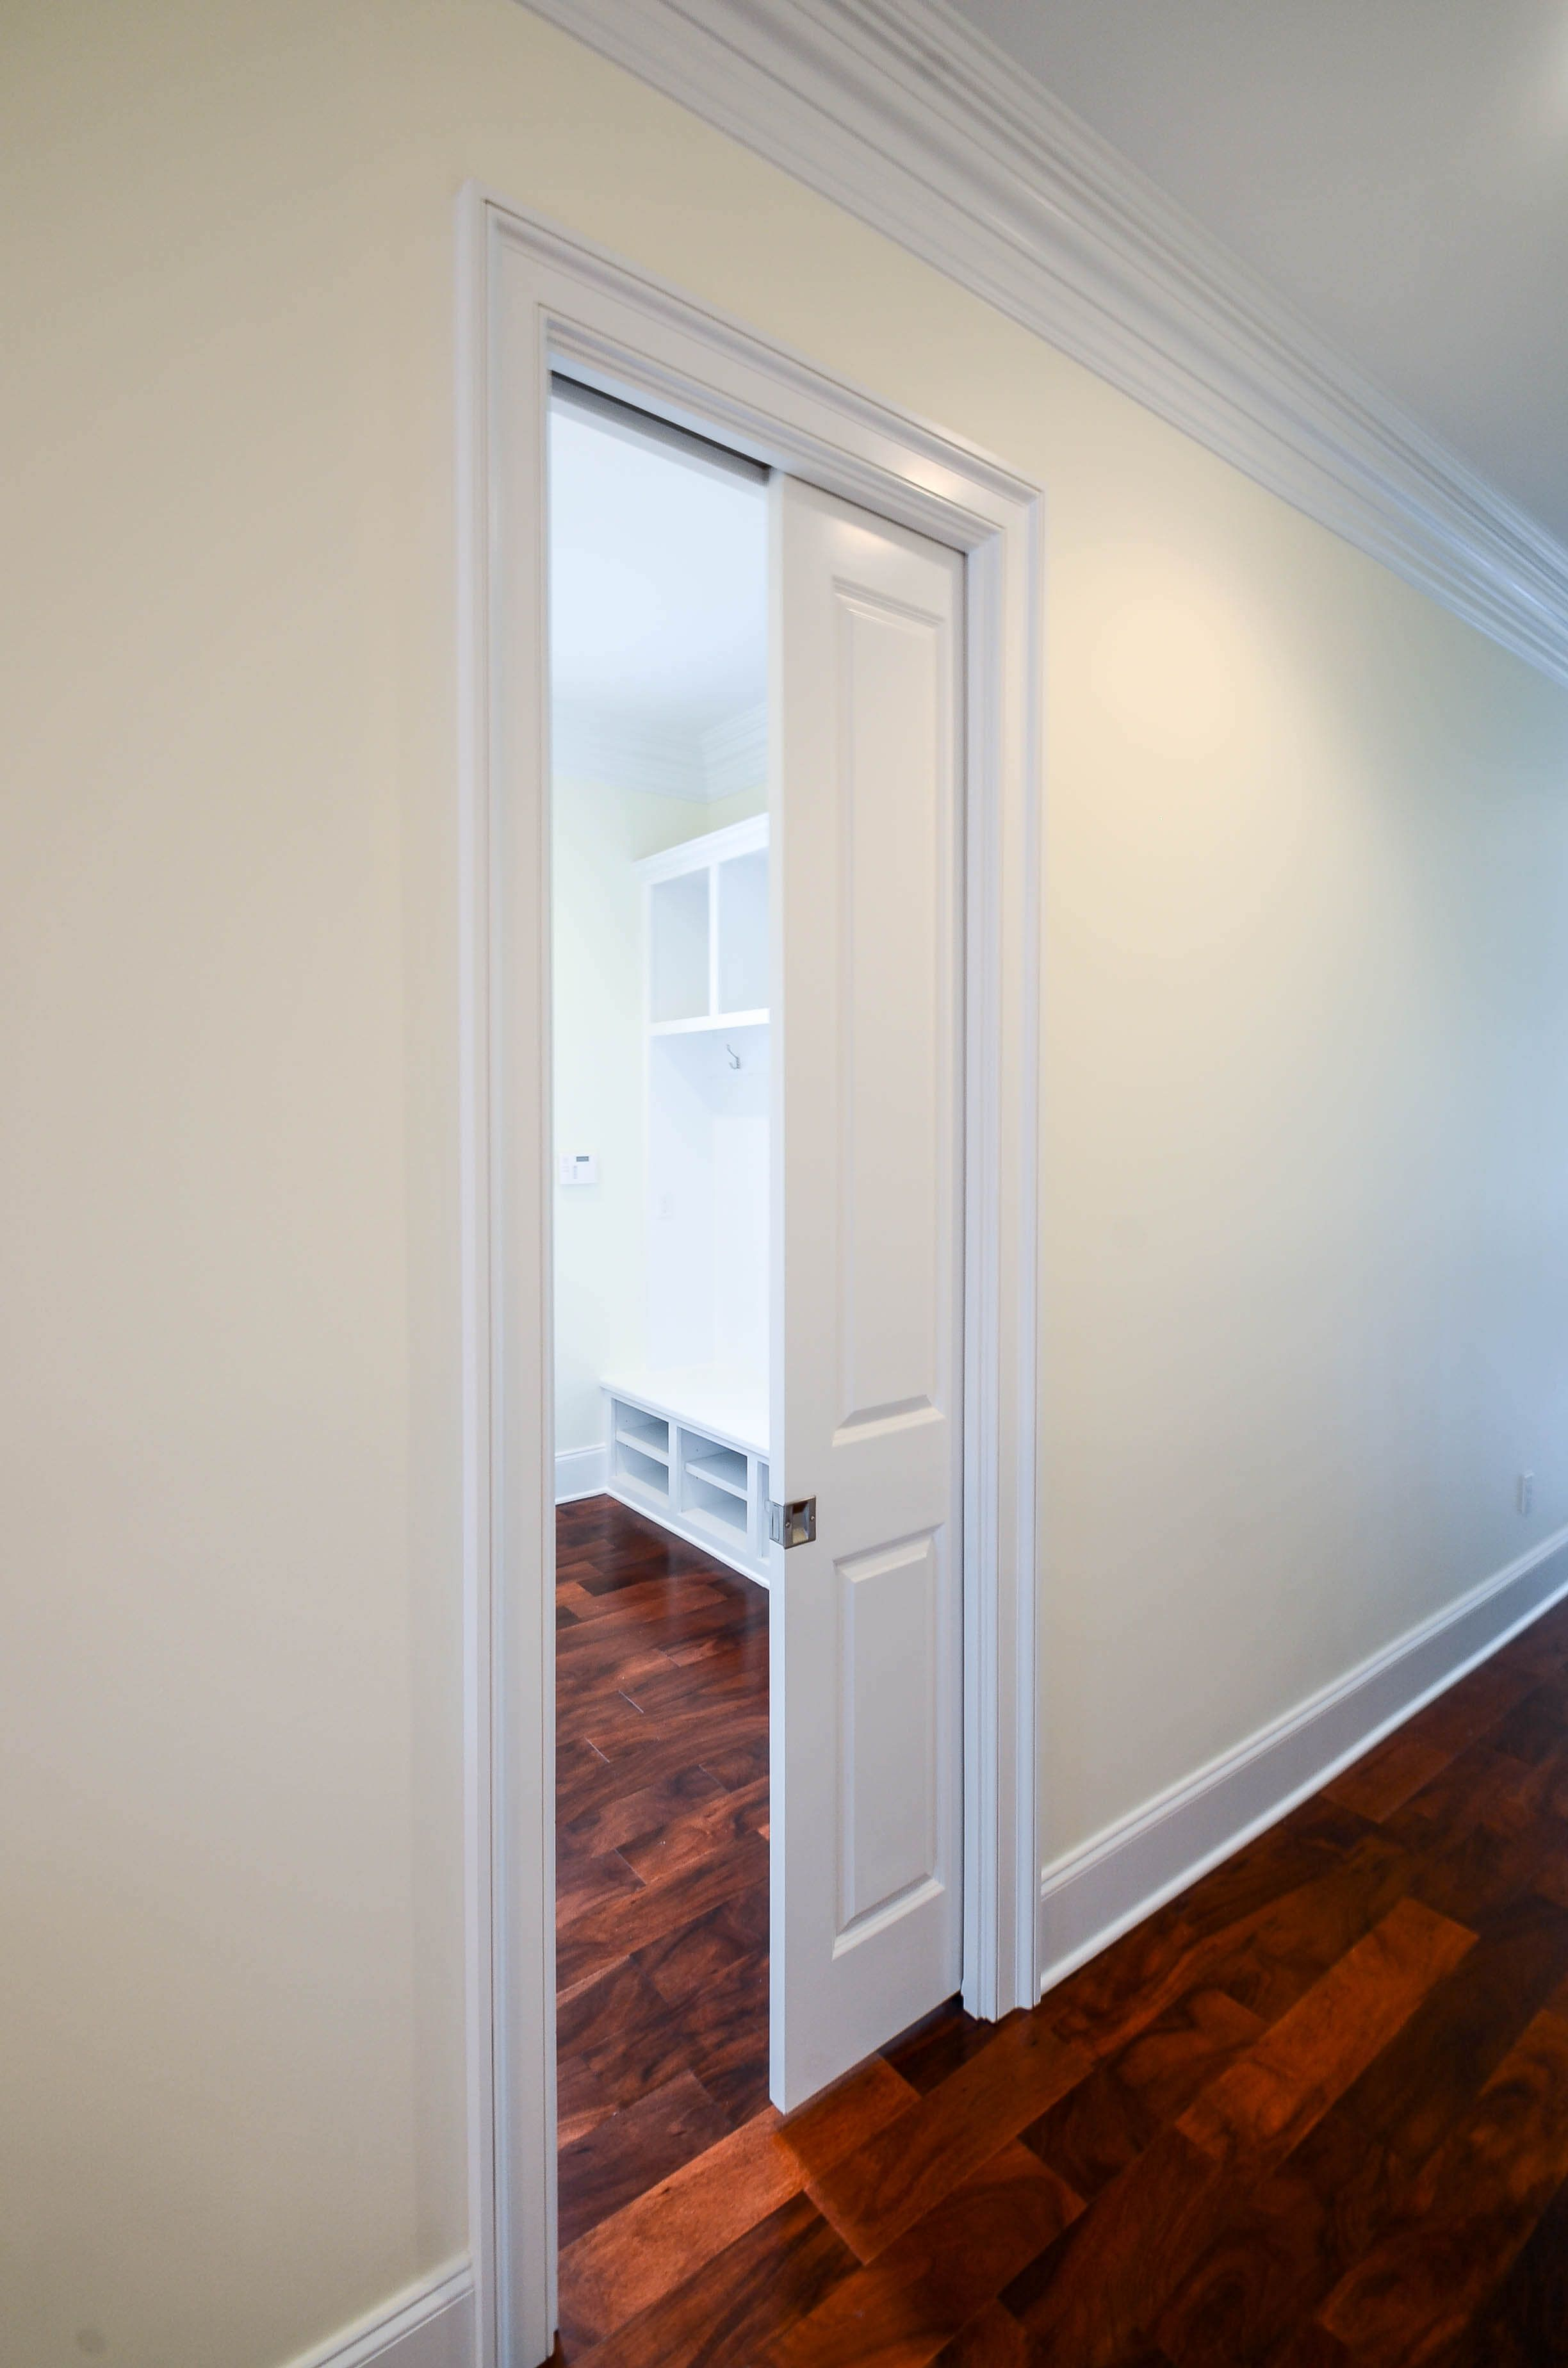 Cavity Sliding Internal Door Internaldoorstyles Kos Sept 17